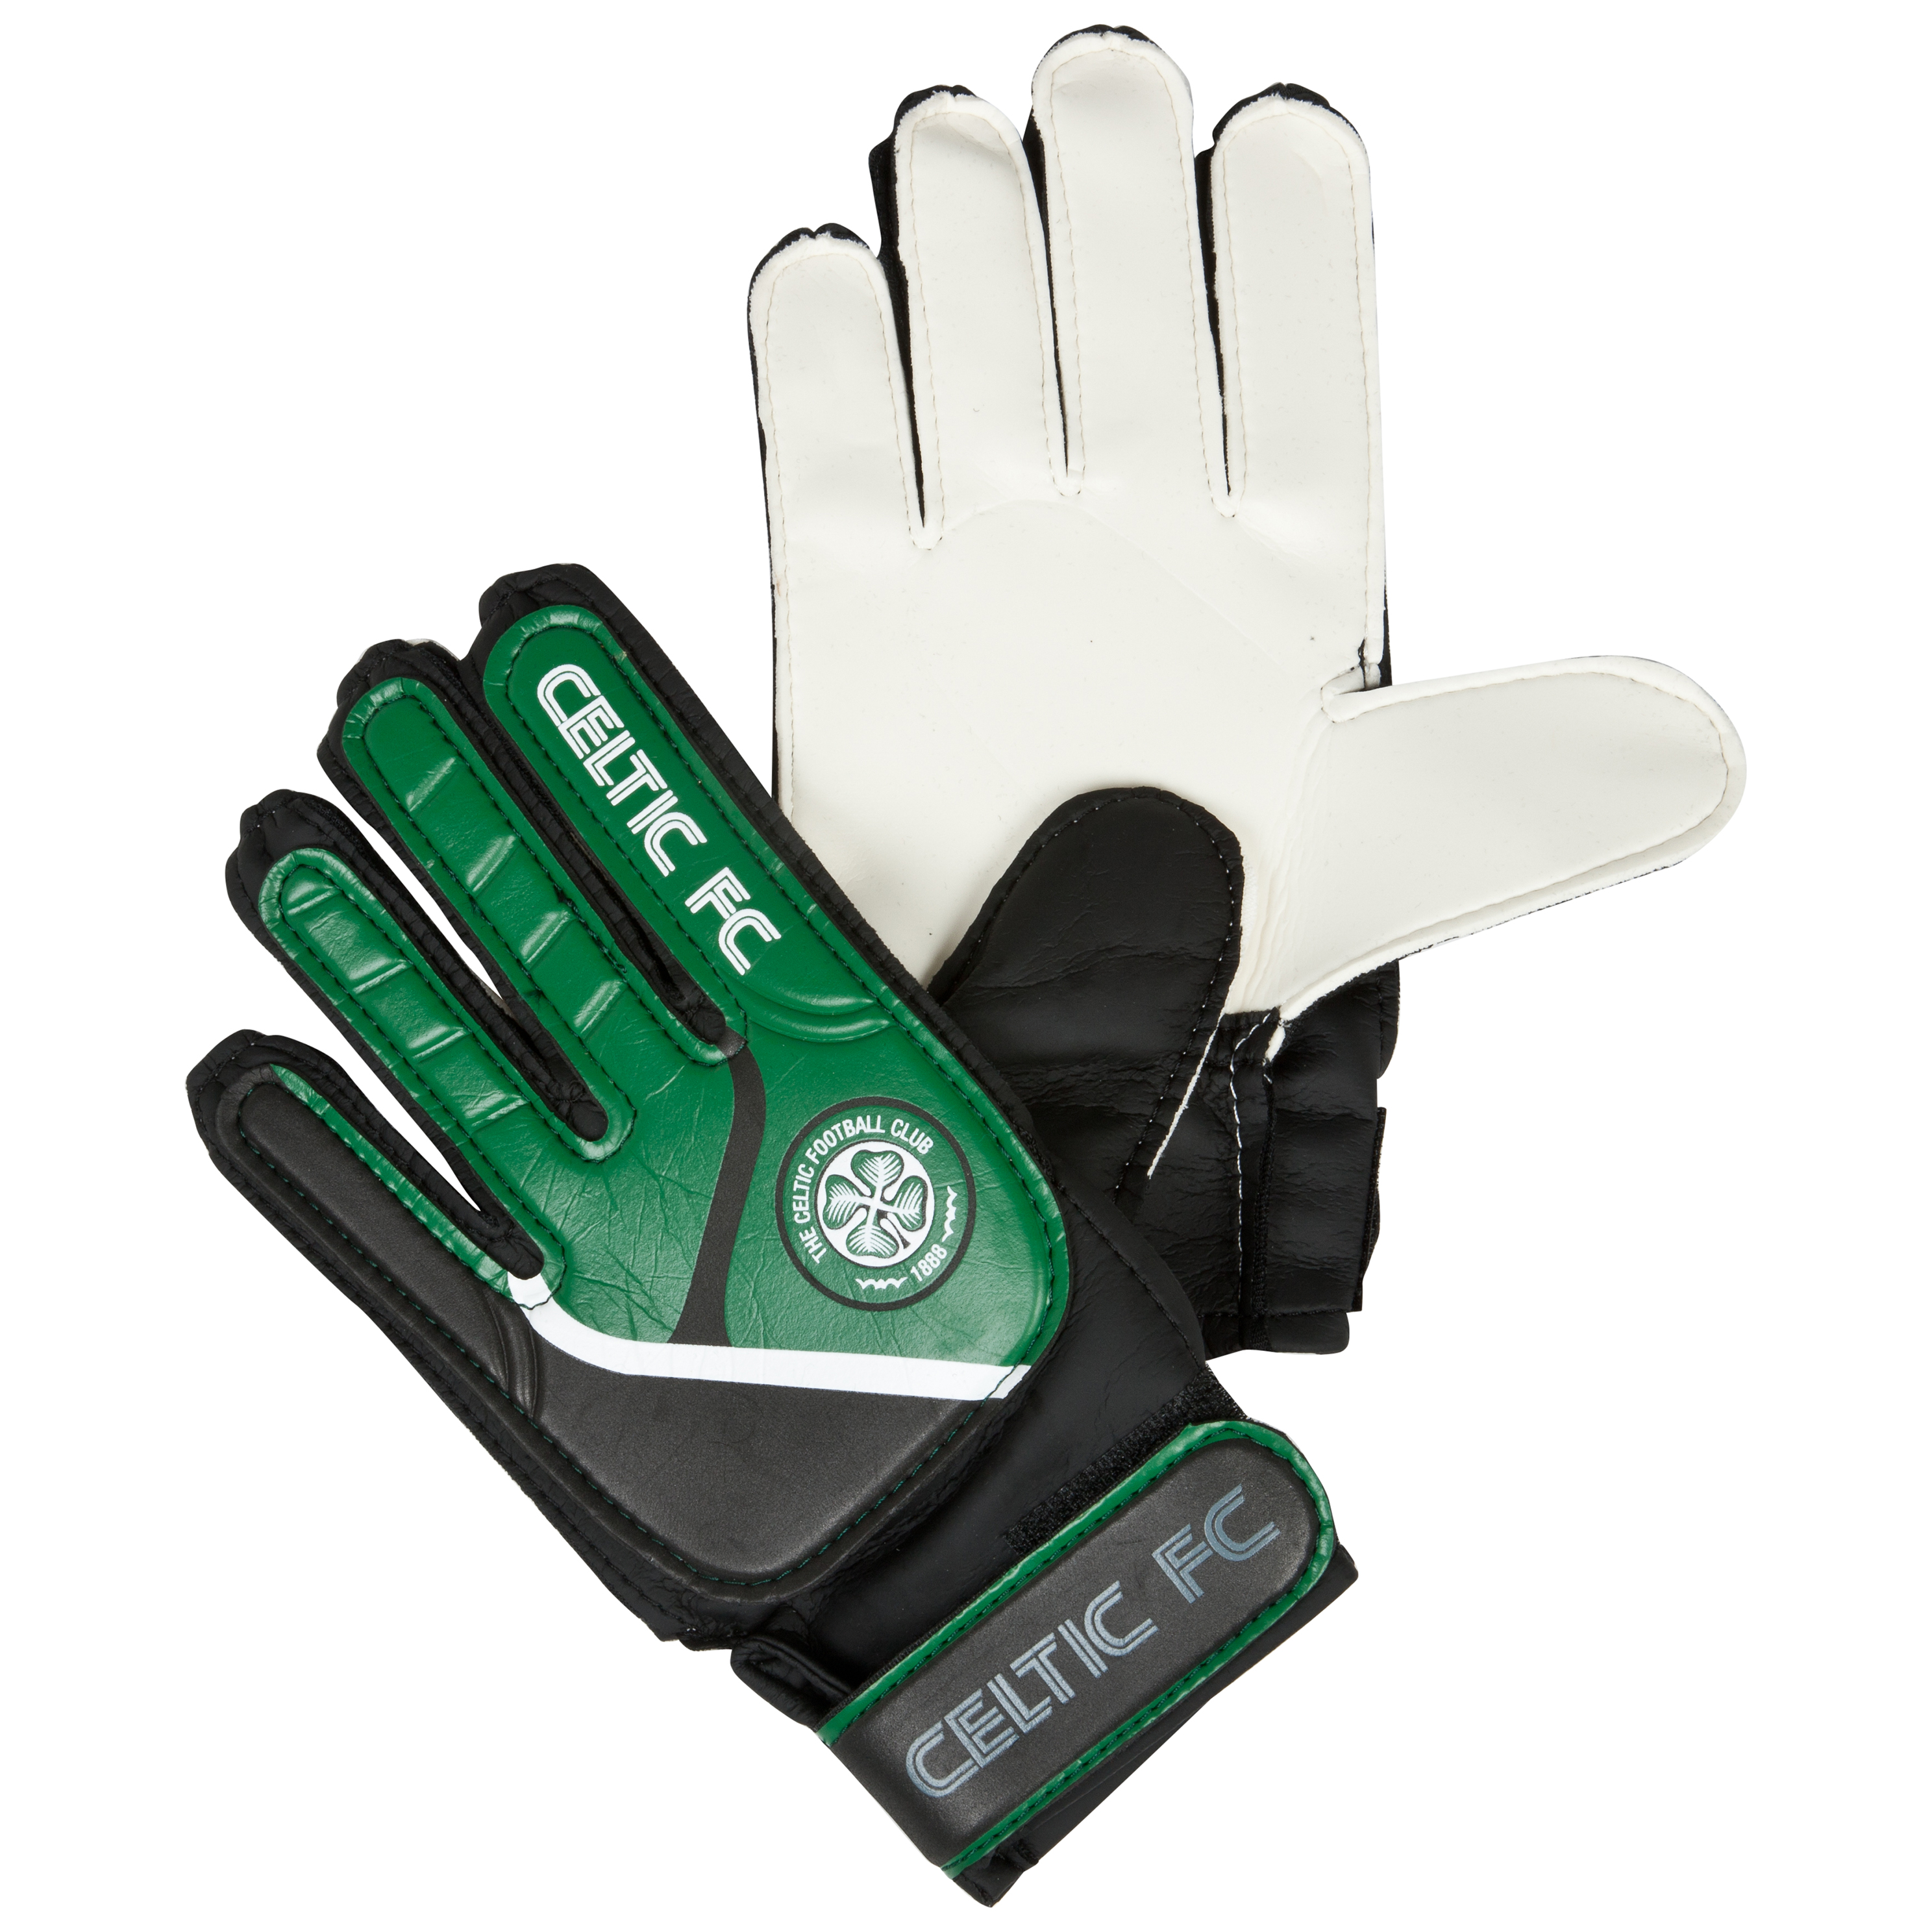 Celtic Goalkeeper Gloves - Grey/Green - Kids